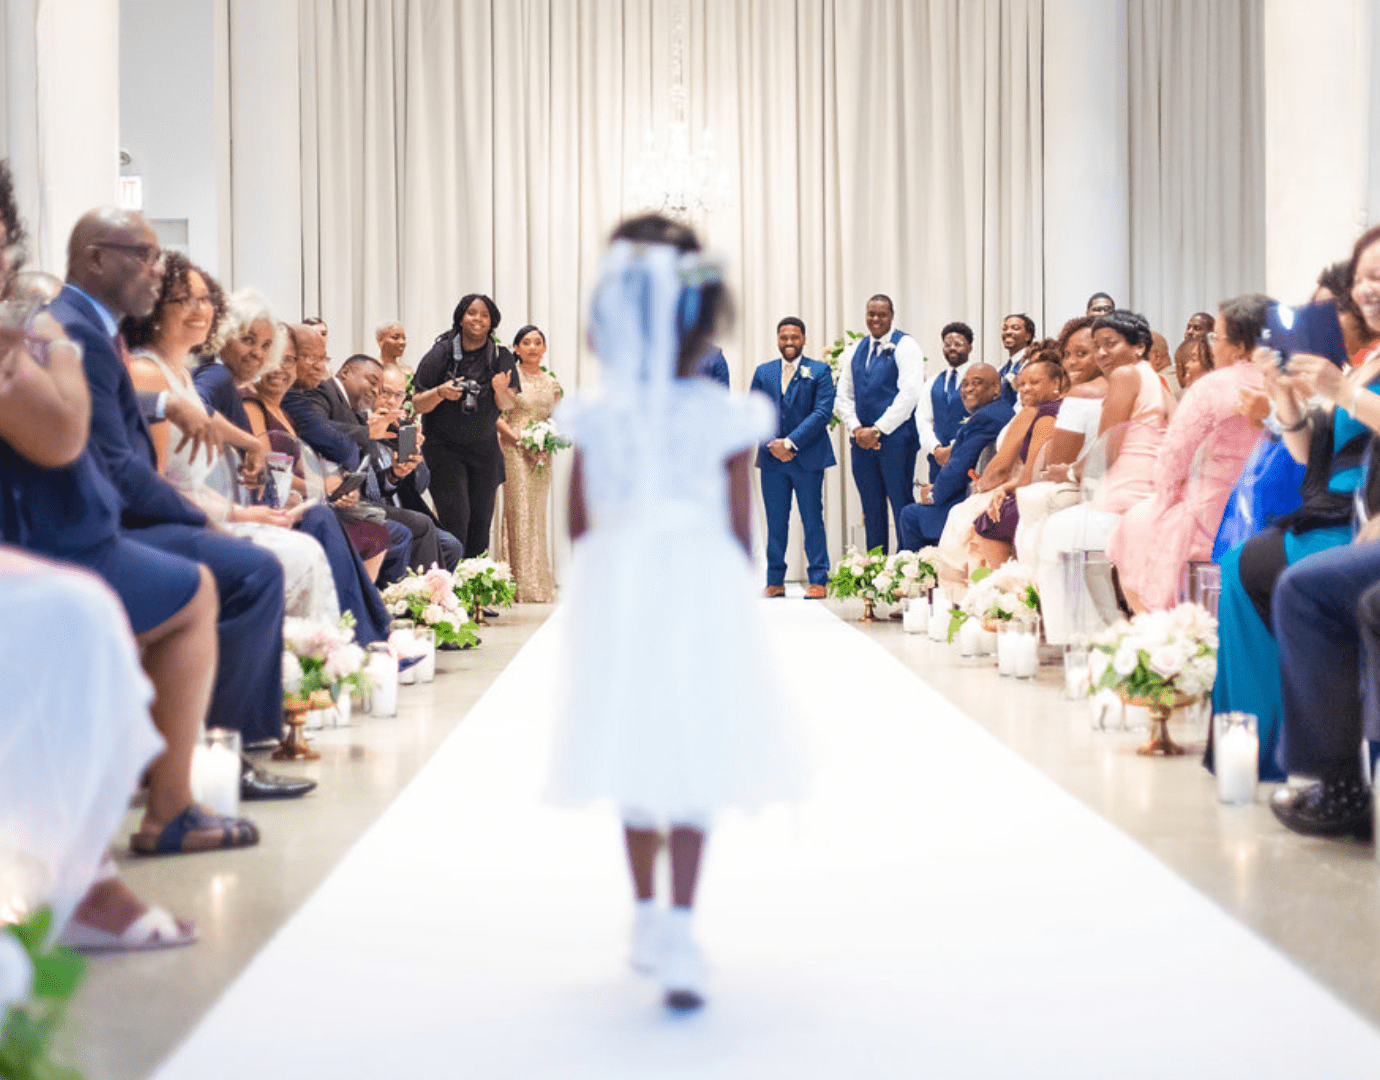 SouthWind Event Chicago Wedding Planner flower girl photo by J Lauryn Photography